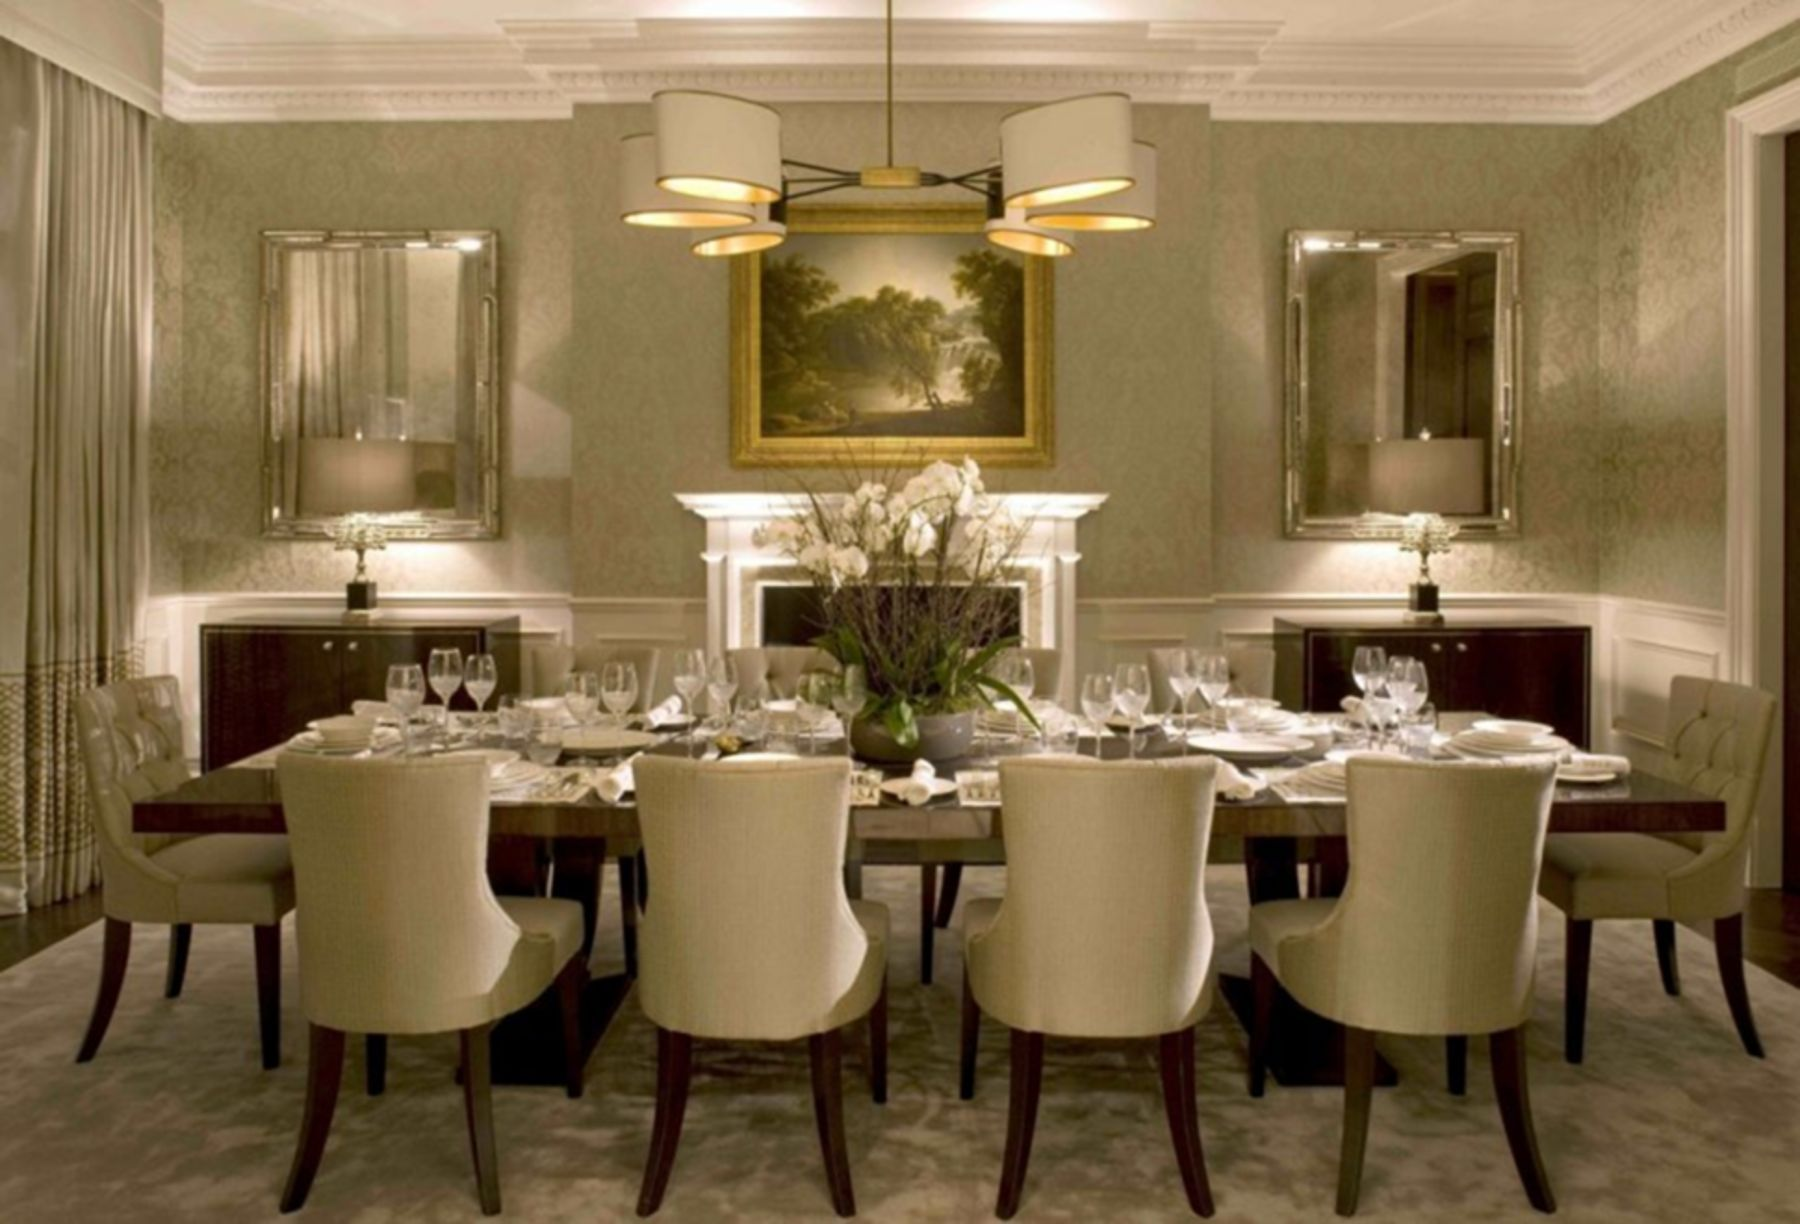 20 Luxurious Dining Room Design And Decorating Ideas Formal Dining Room Decor Luxury Dining Room Dining Room Table Centerpieces